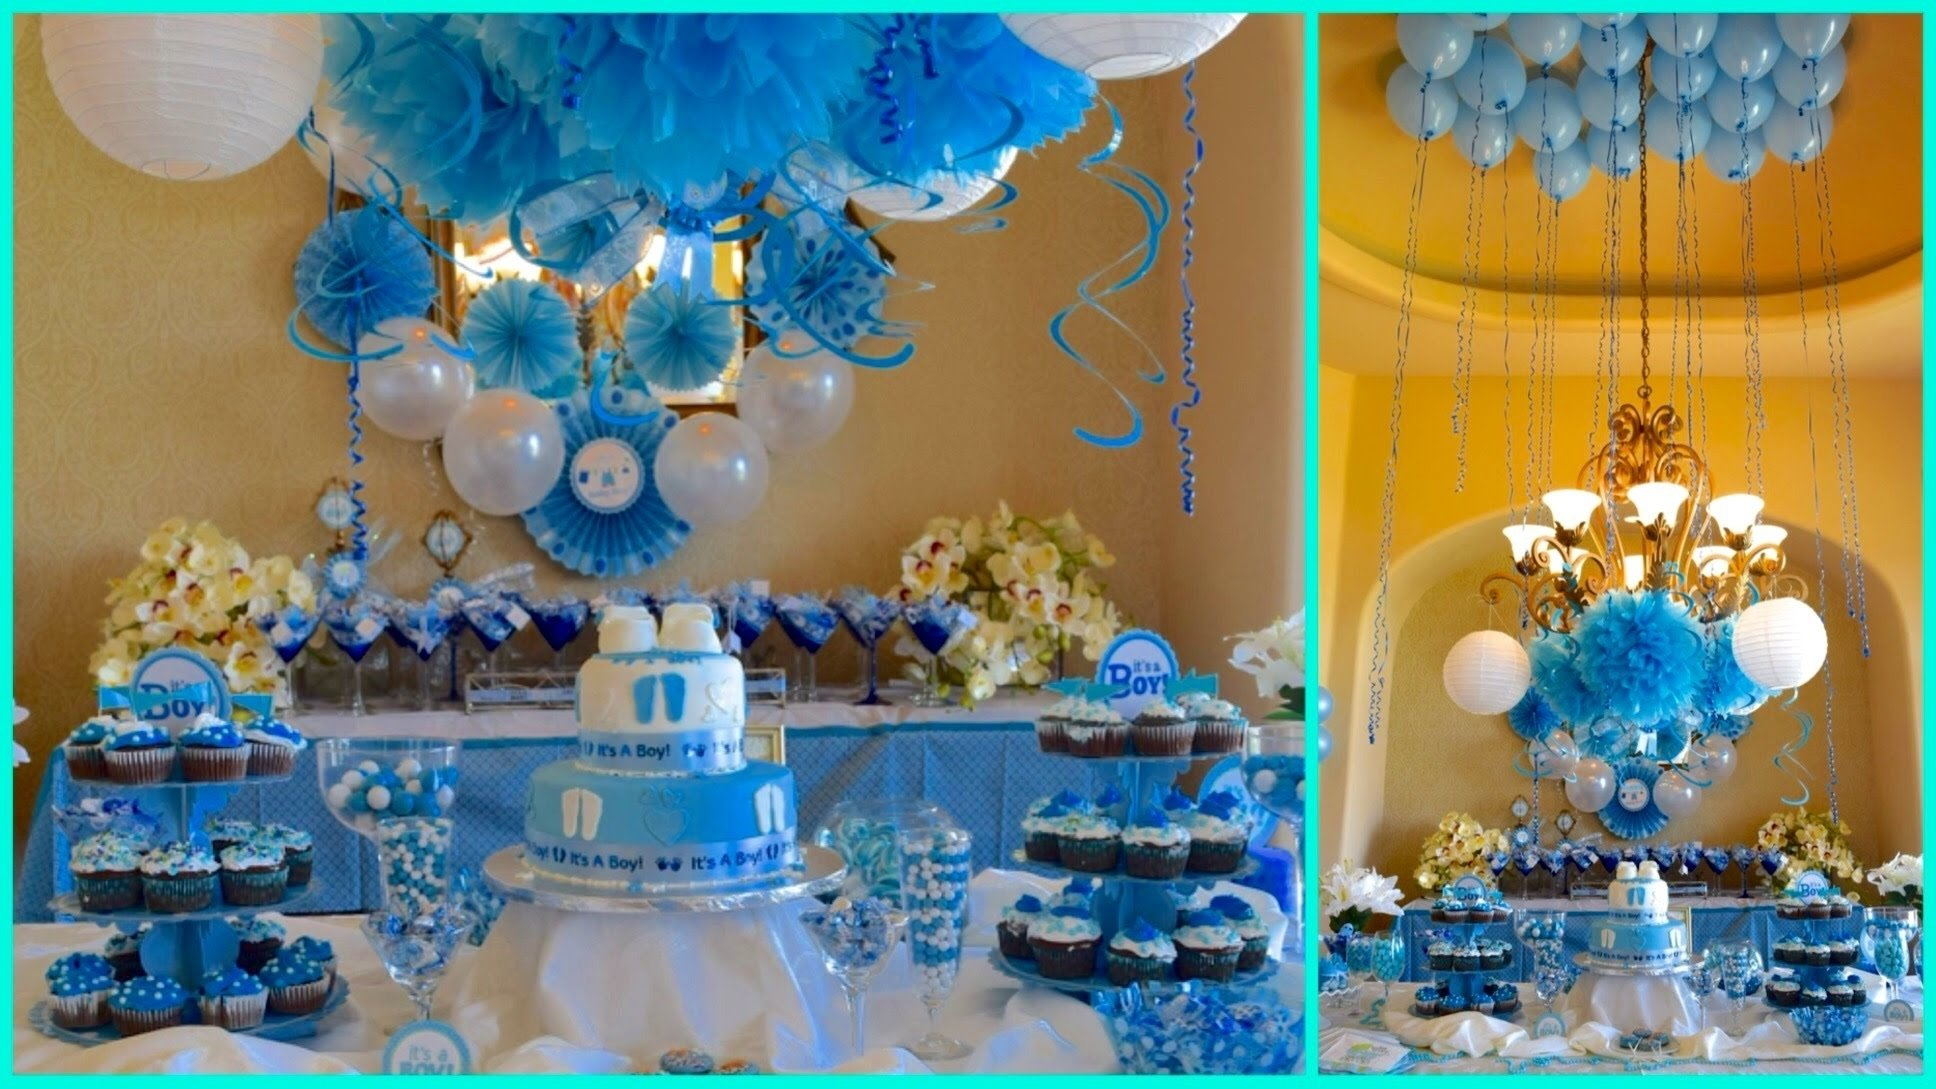 10 Amazing Baby Shower Ideas For Boy baby shower ideas for boy blue theme youtube 21